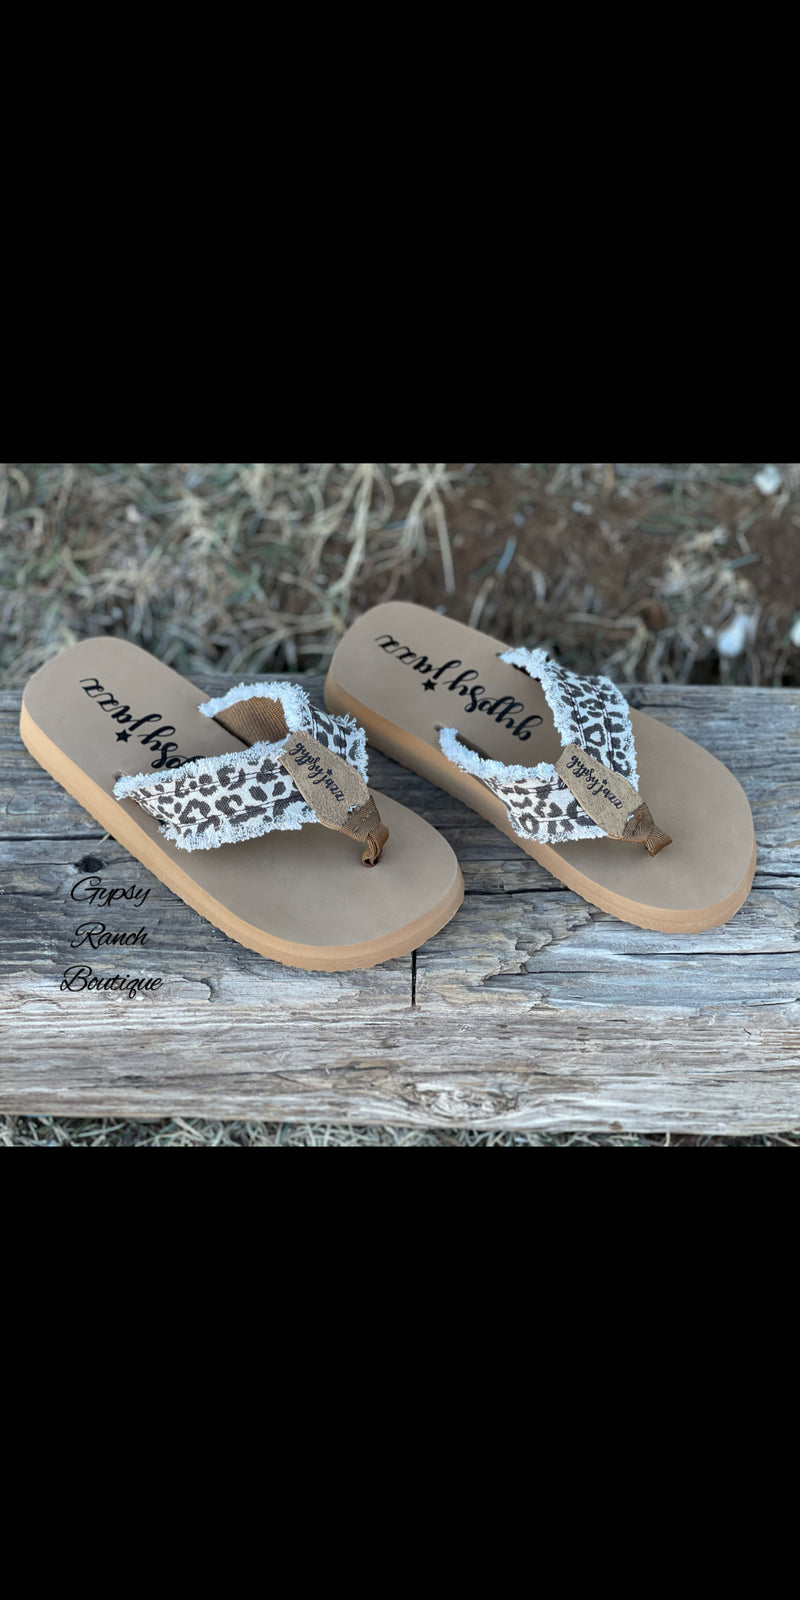 No Limits Leopard Print Gypsy Jazz Flip Flop Sandals